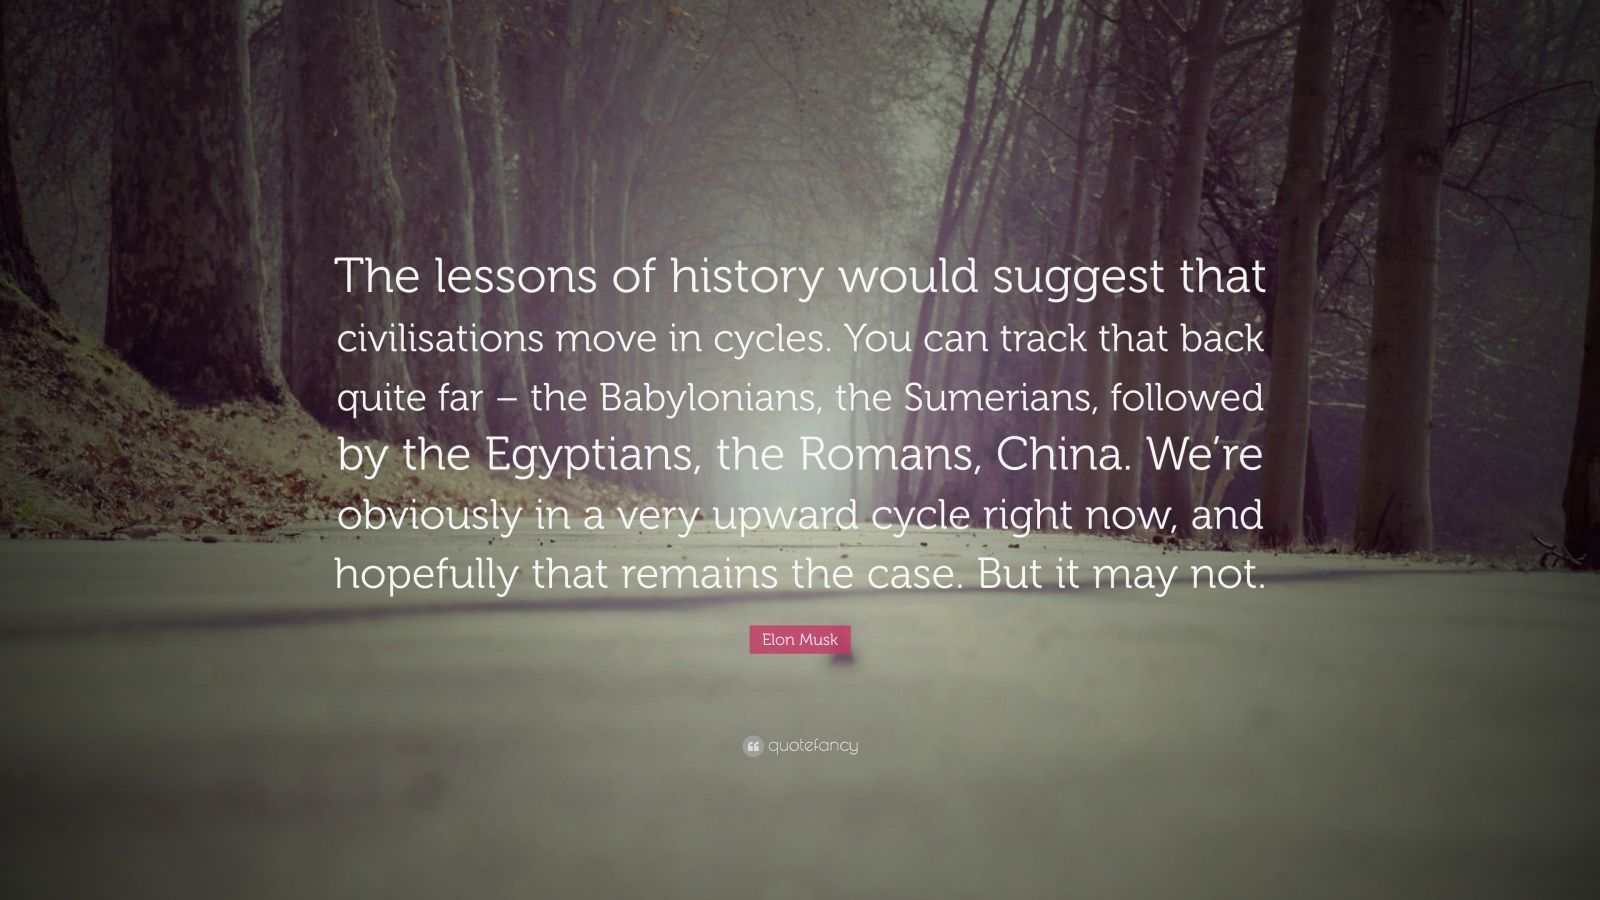 """Elon Musk Quote: """"The lessons of history would suggest that civilisations move in cycles. You can track that back quite far – the Babylonians, the Sumerians, followed by the Egyptians, the Romans, China. We're obviously in a very upward cycle right now, and hopefully that remains the case. But it may not."""""""